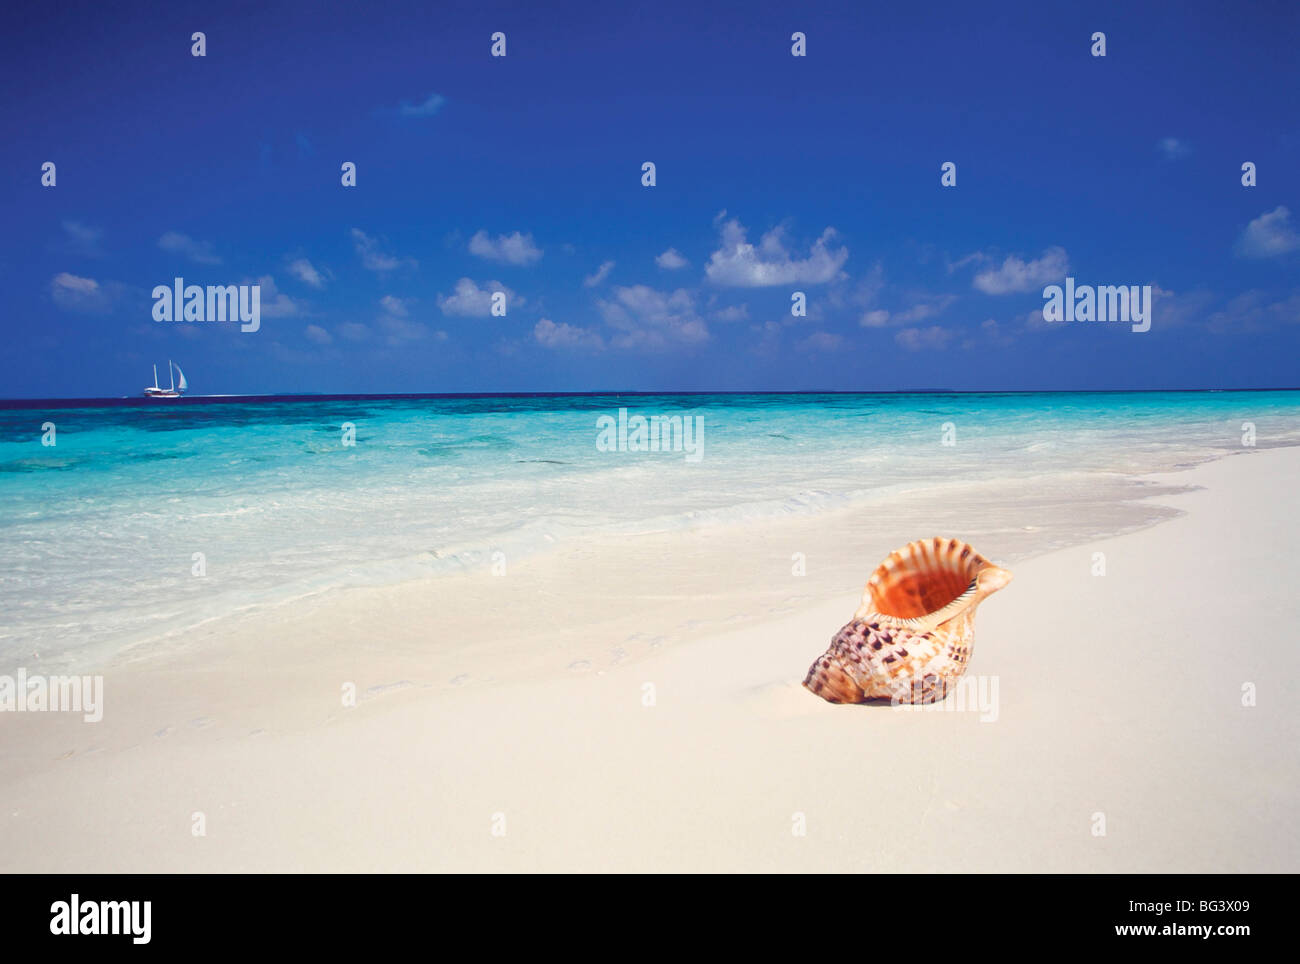 Shell on a deserted beach, Maldives, Indian Ocean, Asia - Stock Image